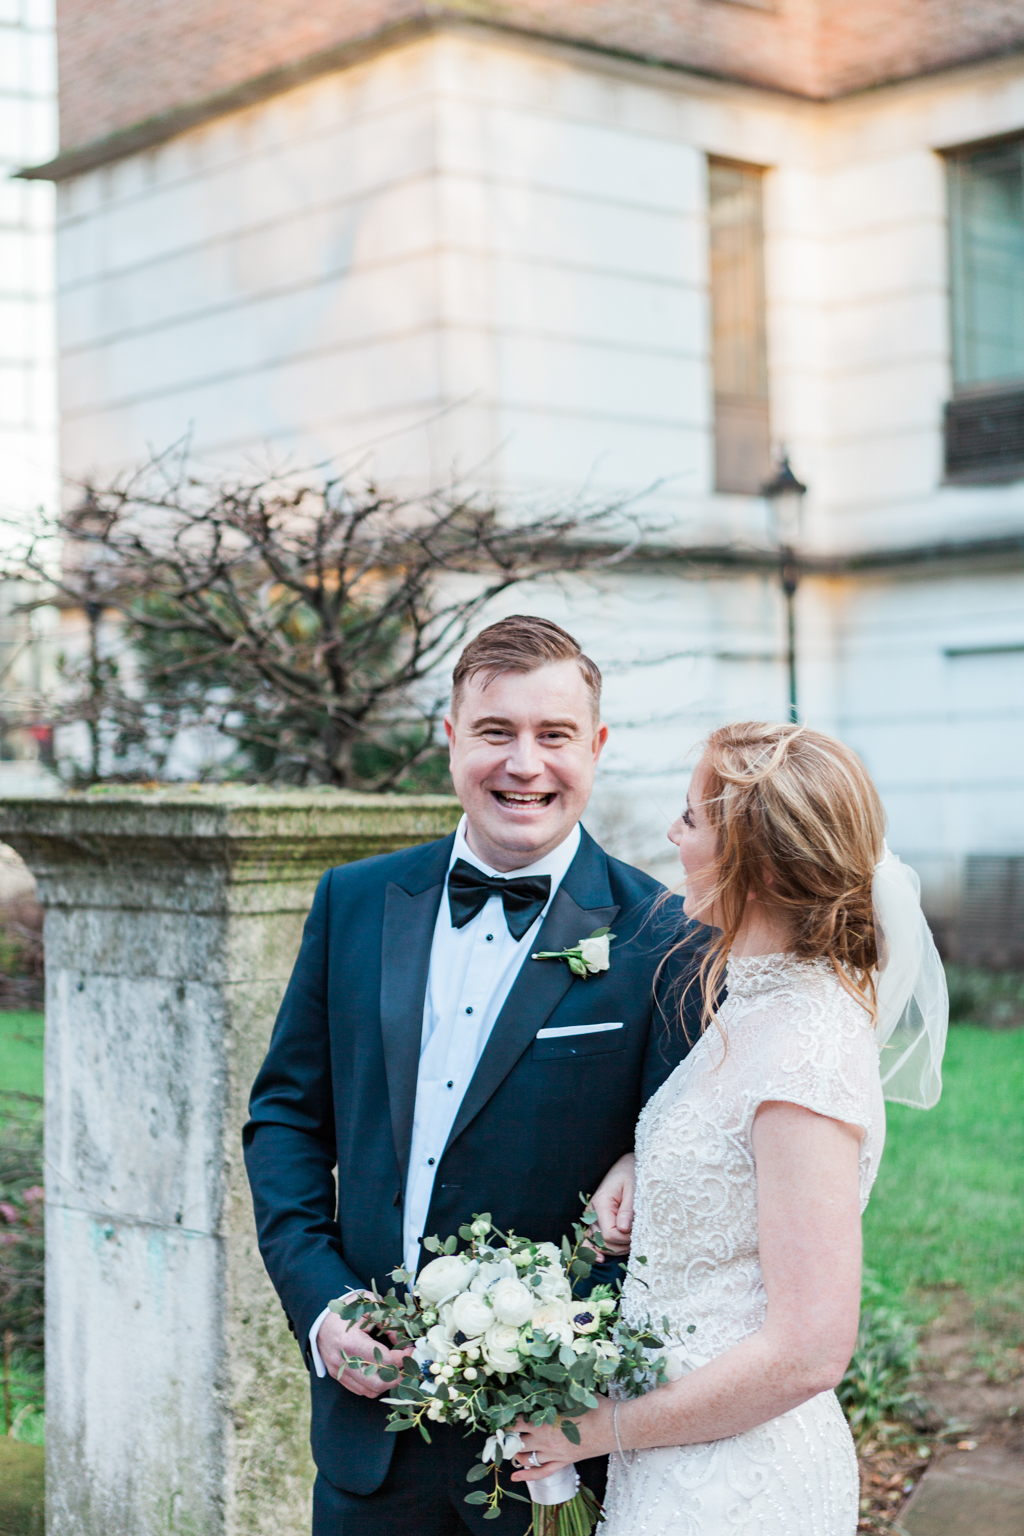 Rebecca & Tom's gloriously glamorous Andaz Hotel wedding, with Amanda Karen Photography (12)